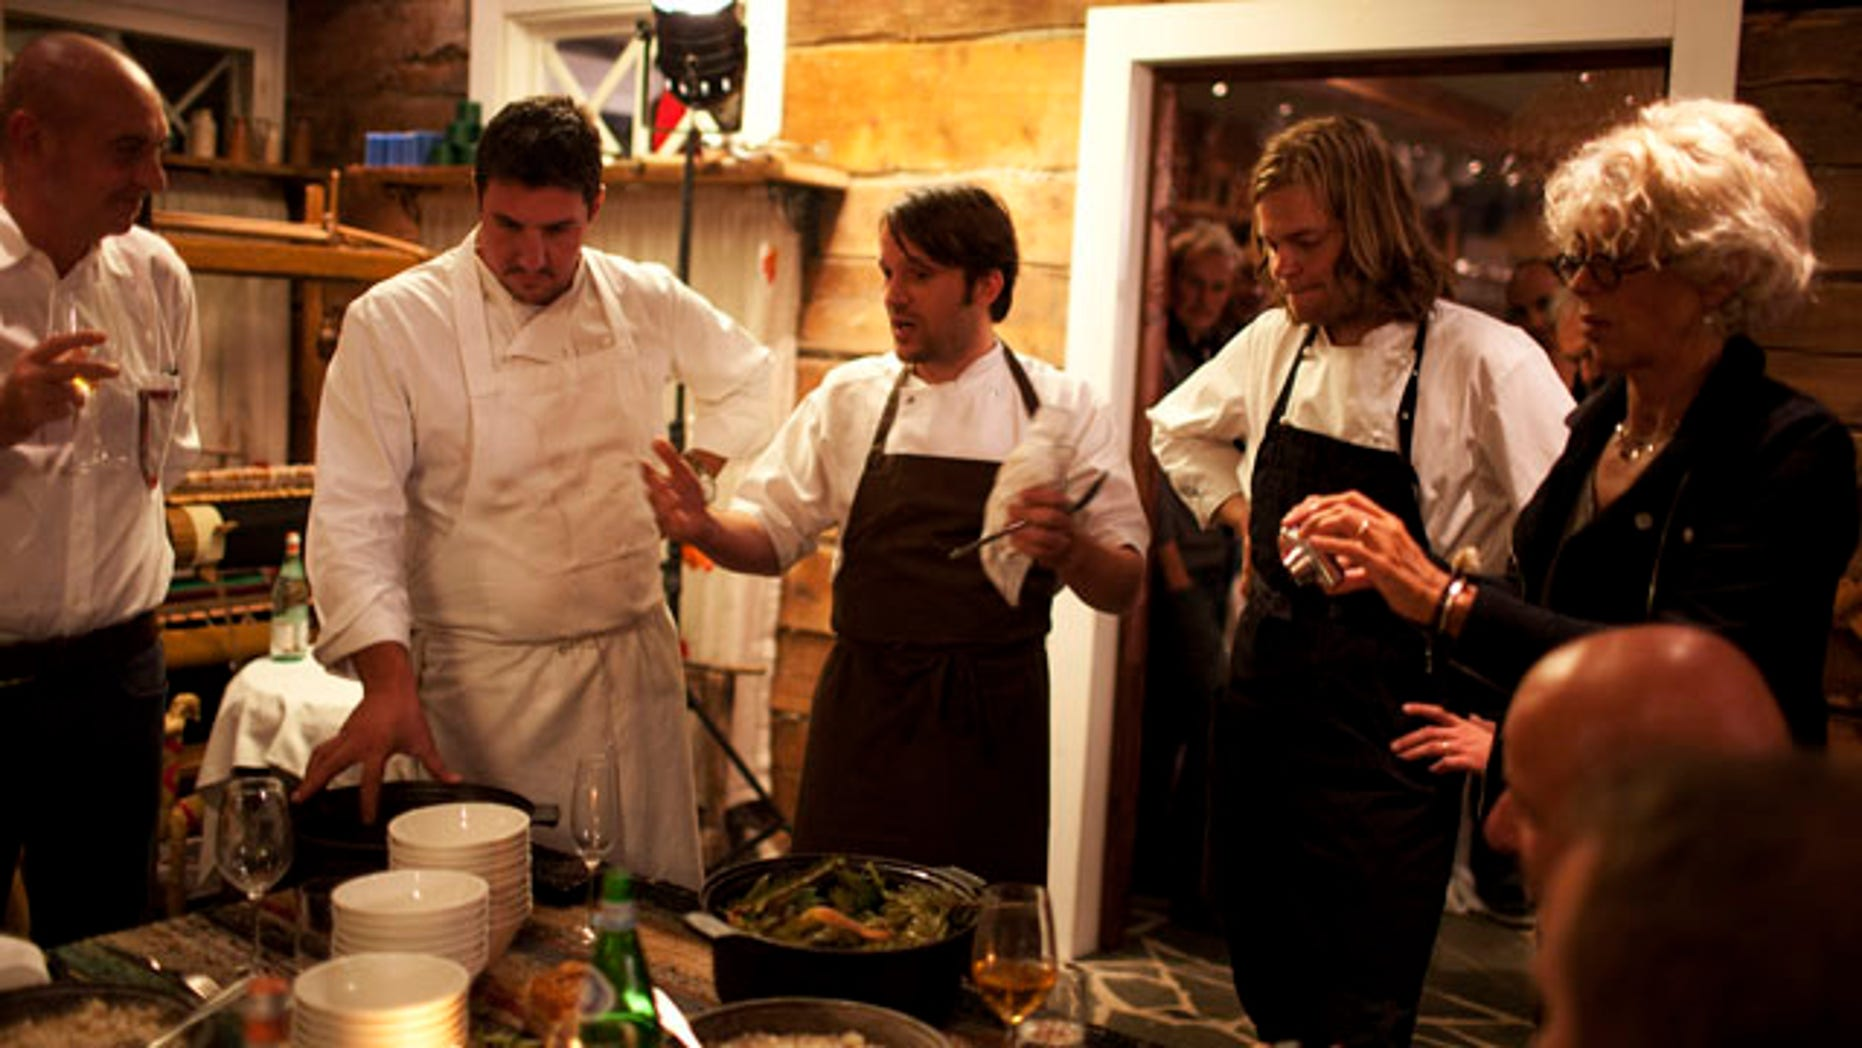 """In this September 2010 photo released by Cook It Raw shows Rene Redzepi, and his team presenting the final dish on the last evening during """"Cook It Raw"""" in Lapland, Finland. The event marked the third time in just over a year that this international group of chefs have hunted, fished and foraged together in a particular location, then prepared a meal while leaving the smallest possible footprint on the environment. (AP)"""